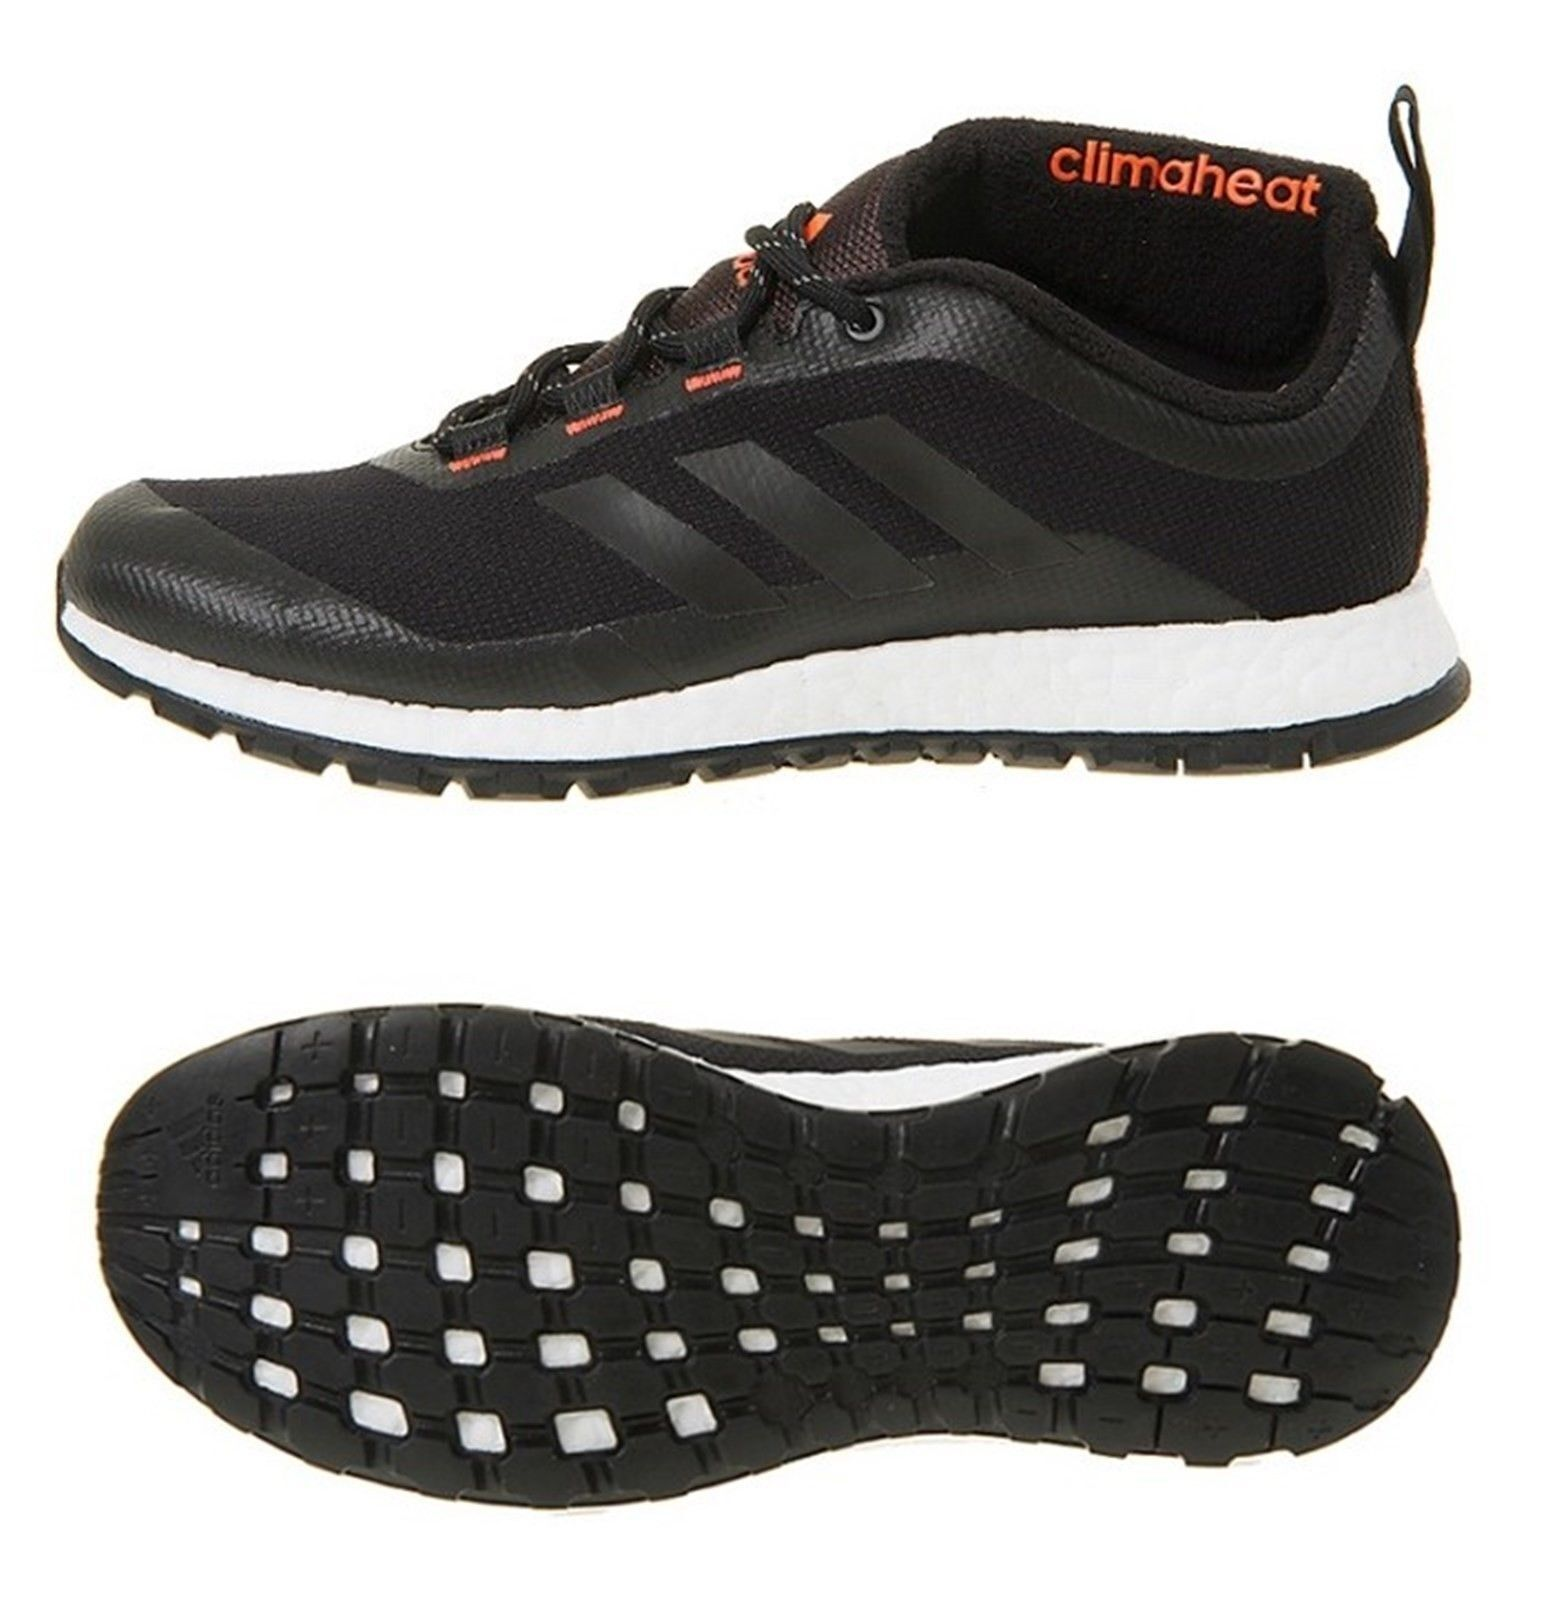 Adidas Men Shoes Shoe Climaheat Rocket Running Sneakers Fitness Black Shoe Shoes GYM AQ6030 2c7395